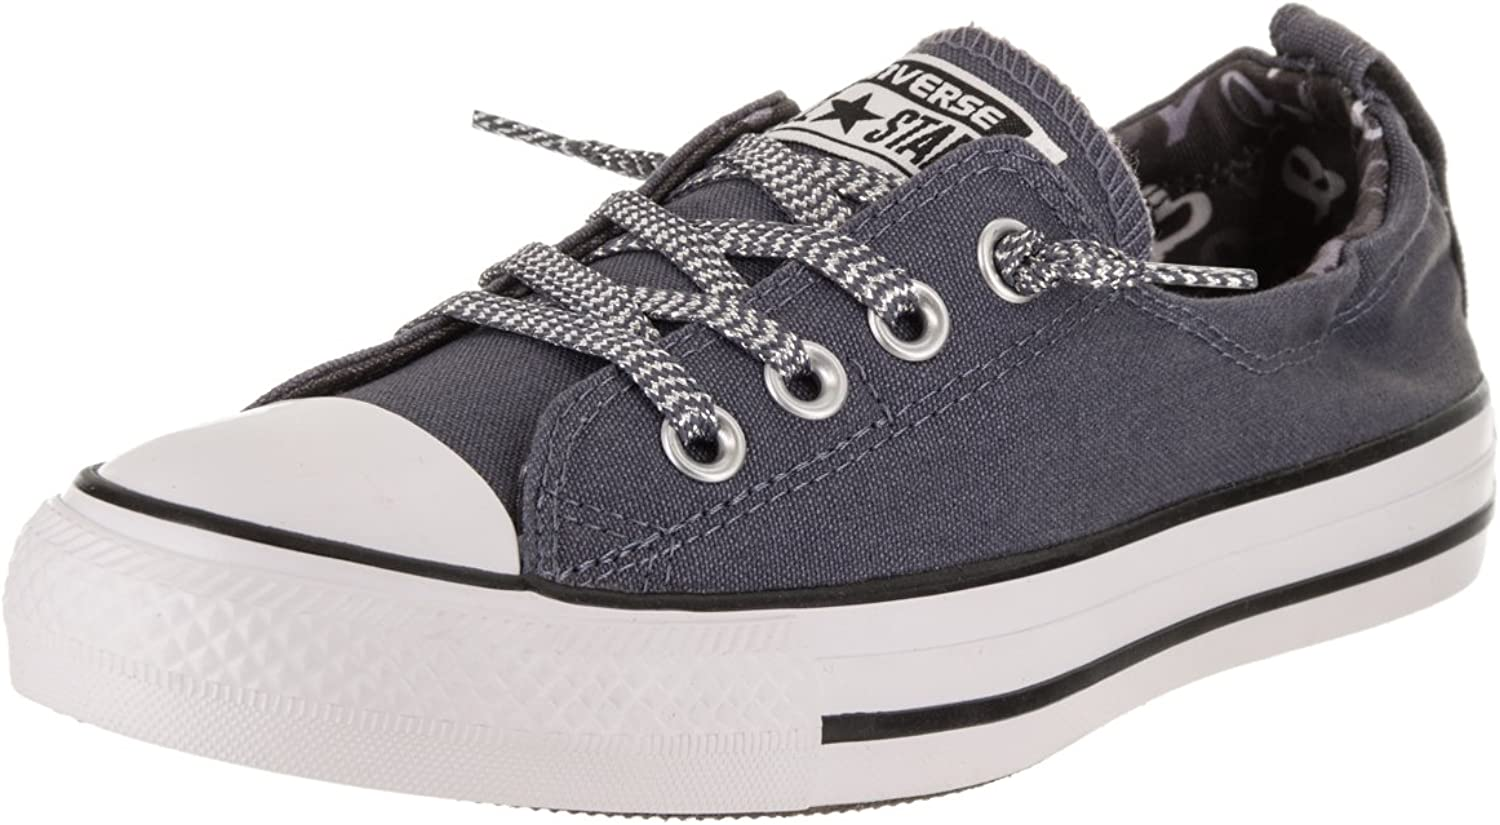 Converse Women's Chuck Taylor All Star Shoreline Slip-On Casual shoes